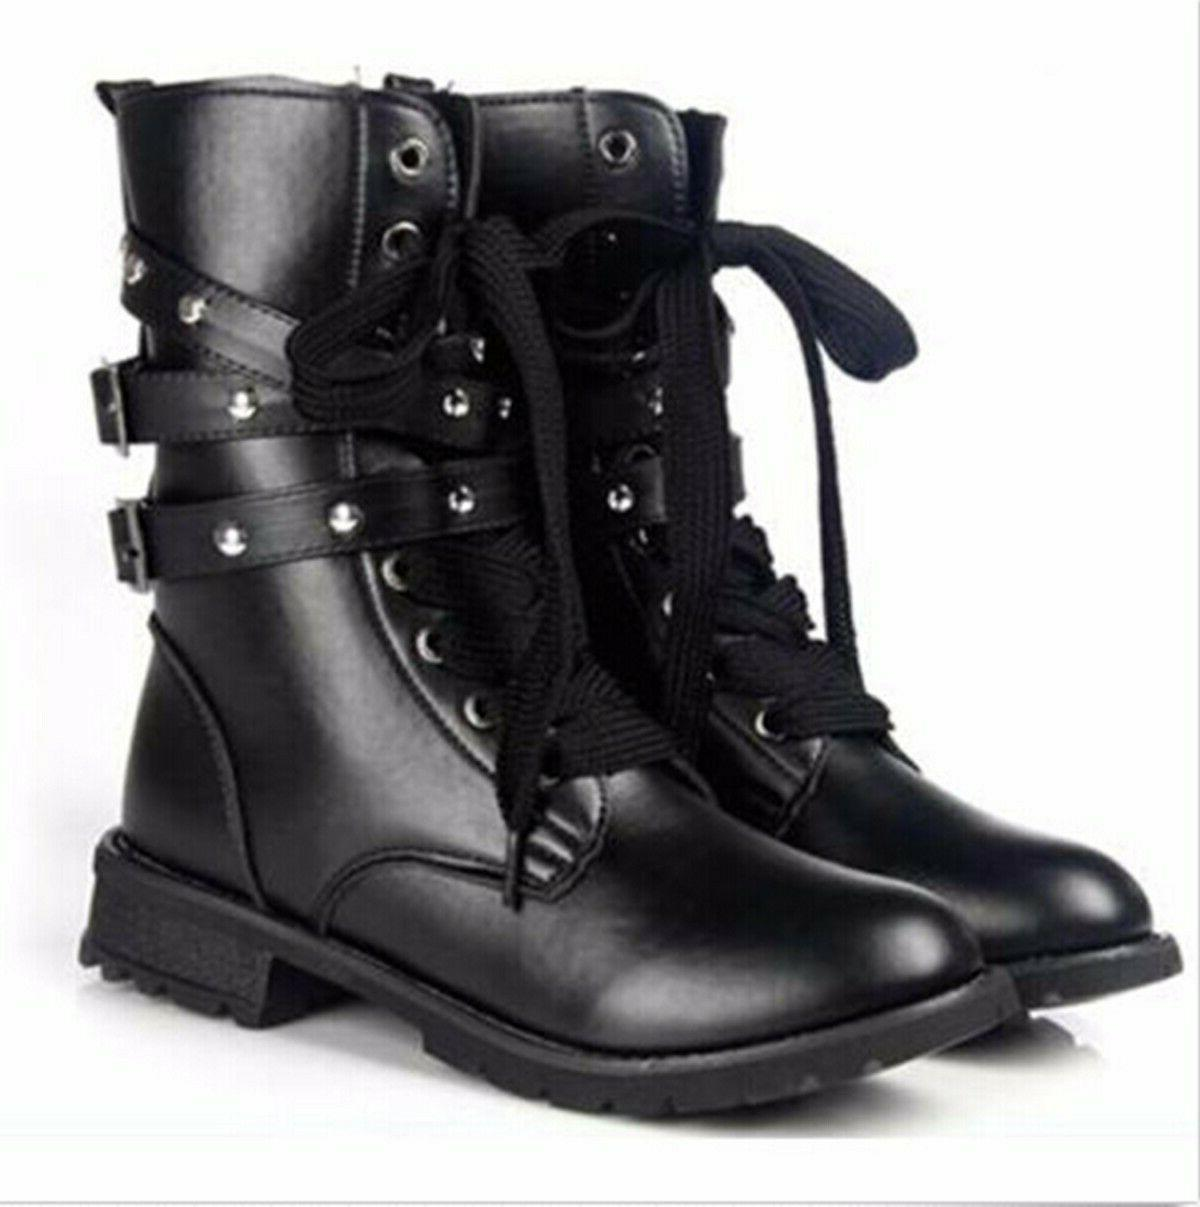 Boots Military 3 Buckle Shoes